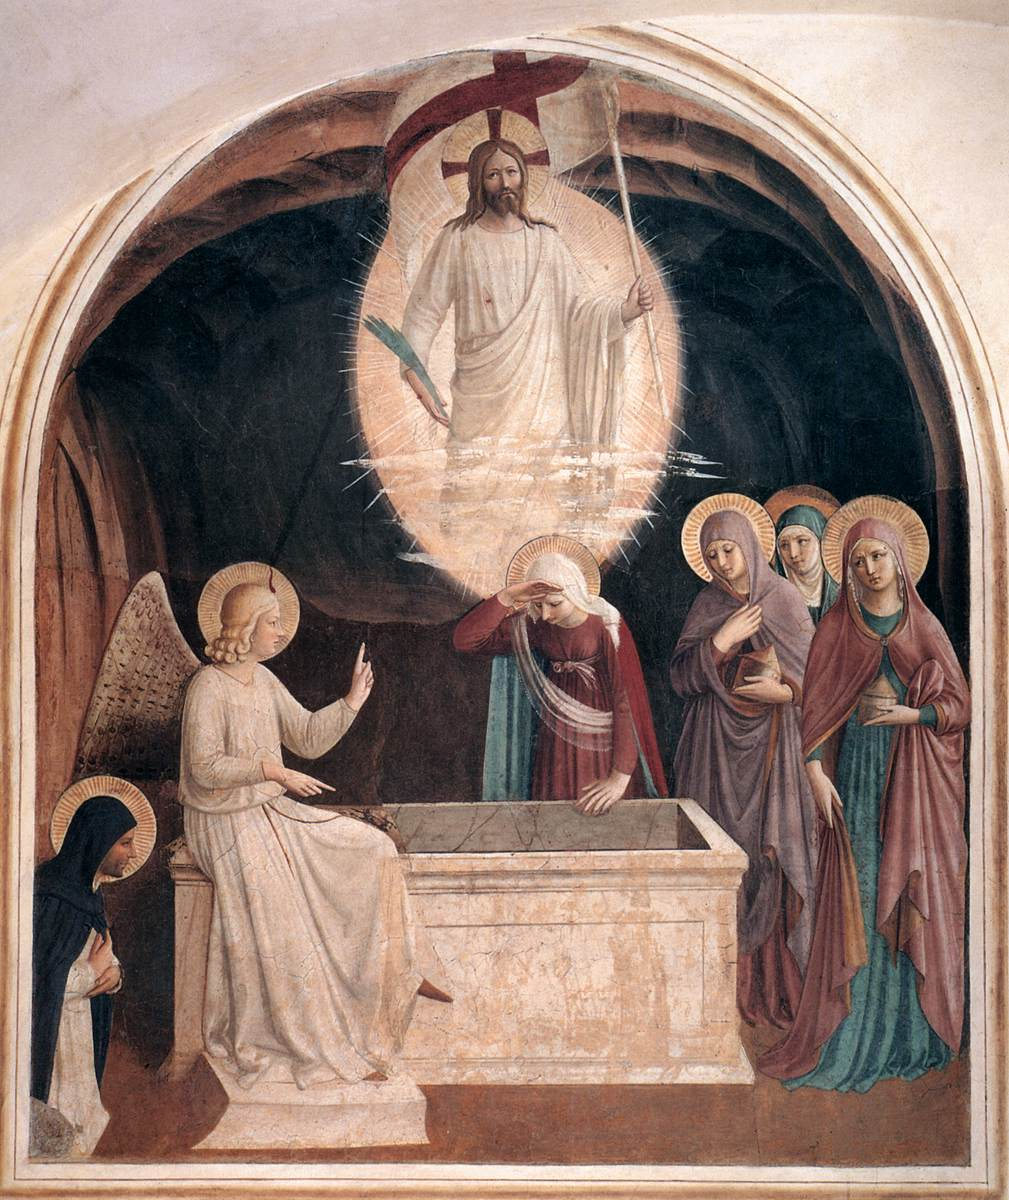 """Fra Angelico - Resurrection of Christ and Women at the Tomb (Cell 8) - WGA00542"" by Fra Angelico (circa 1395–1455) - Web Gallery of Art:   Image  Info about artwork. Licensed under Public Domain via Wikimedia Commons - http://commons.wikimedia.org/wiki/File:Fra_Angelico_-_Resurrection_of_Christ_and_Women_at_the_Tomb_(Cell_8)_-_WGA00542.jpg#/media/File:Fra_Angelico_-_Resurrection_of_Christ_and_Women_at_the_Tomb_(Cell_8)_-_WGA00542.jpg"